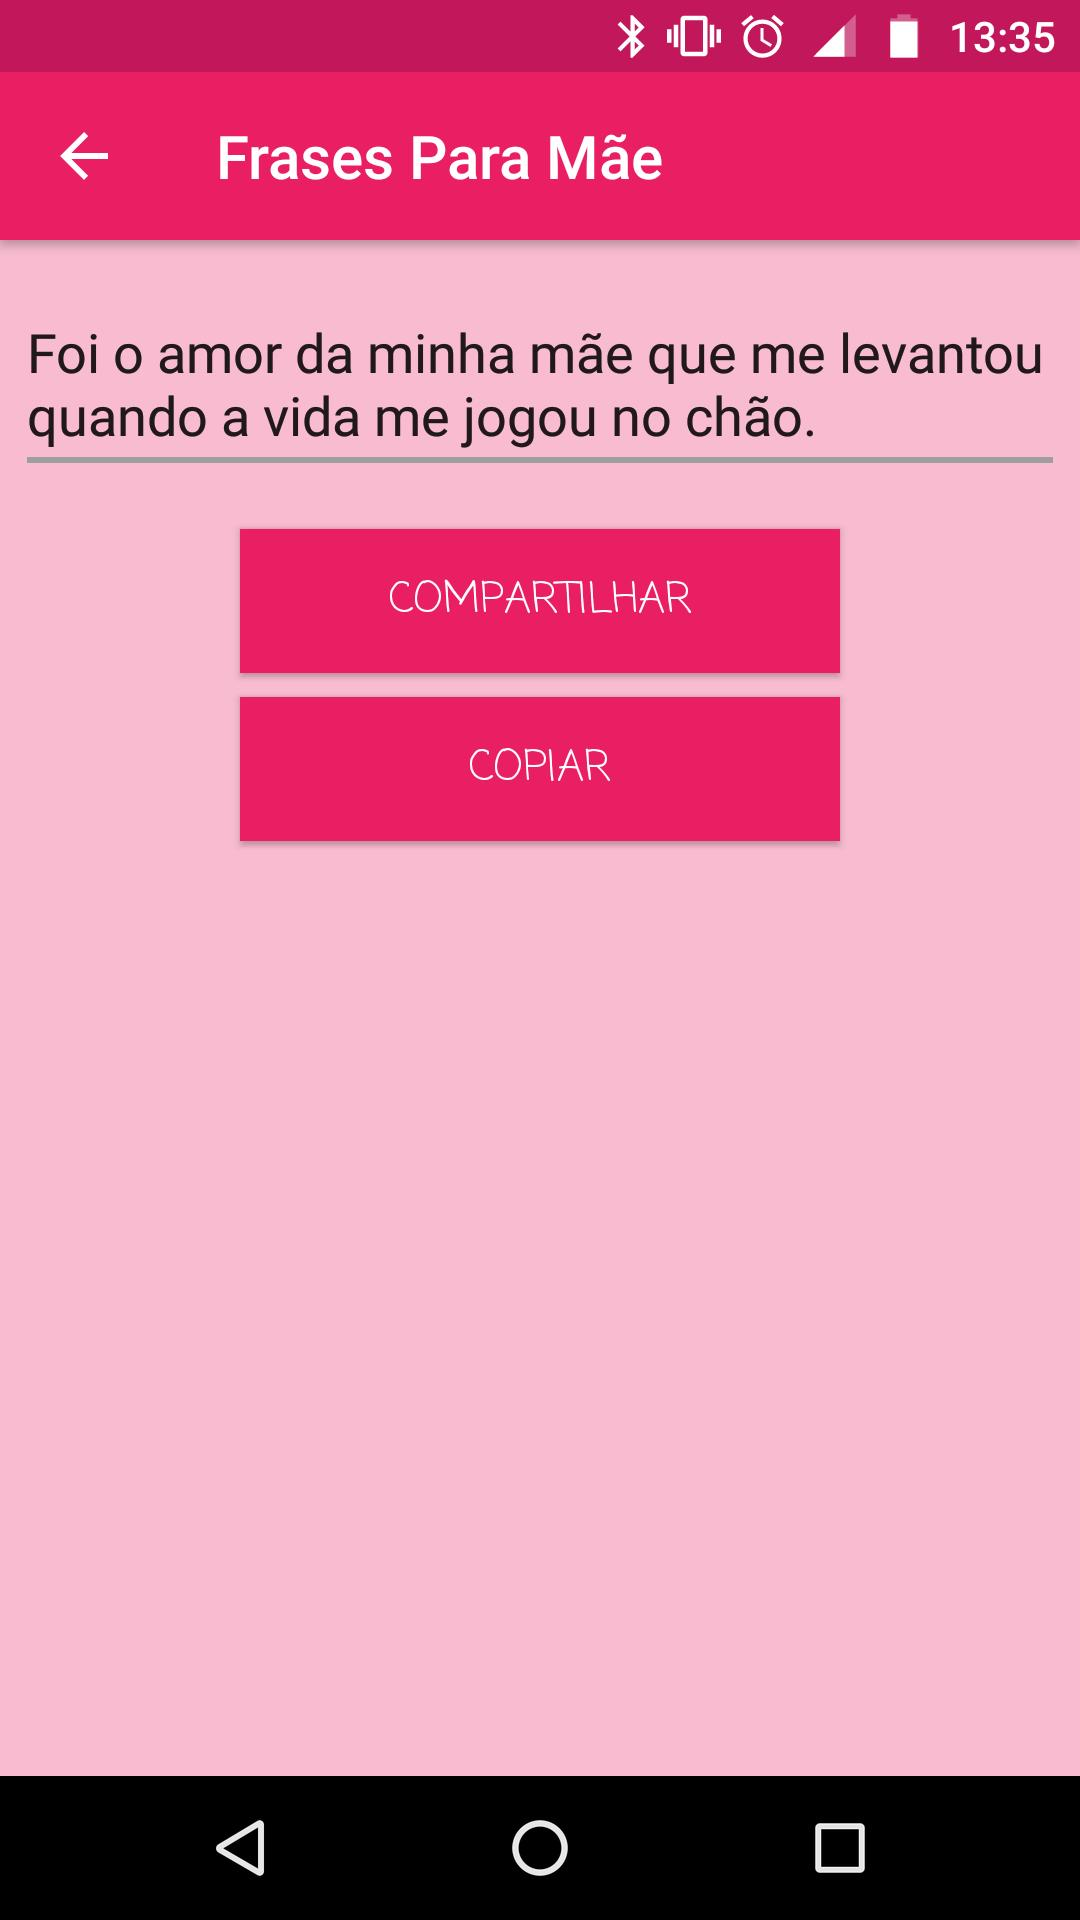 Frases Para Mãe For Android Apk Download